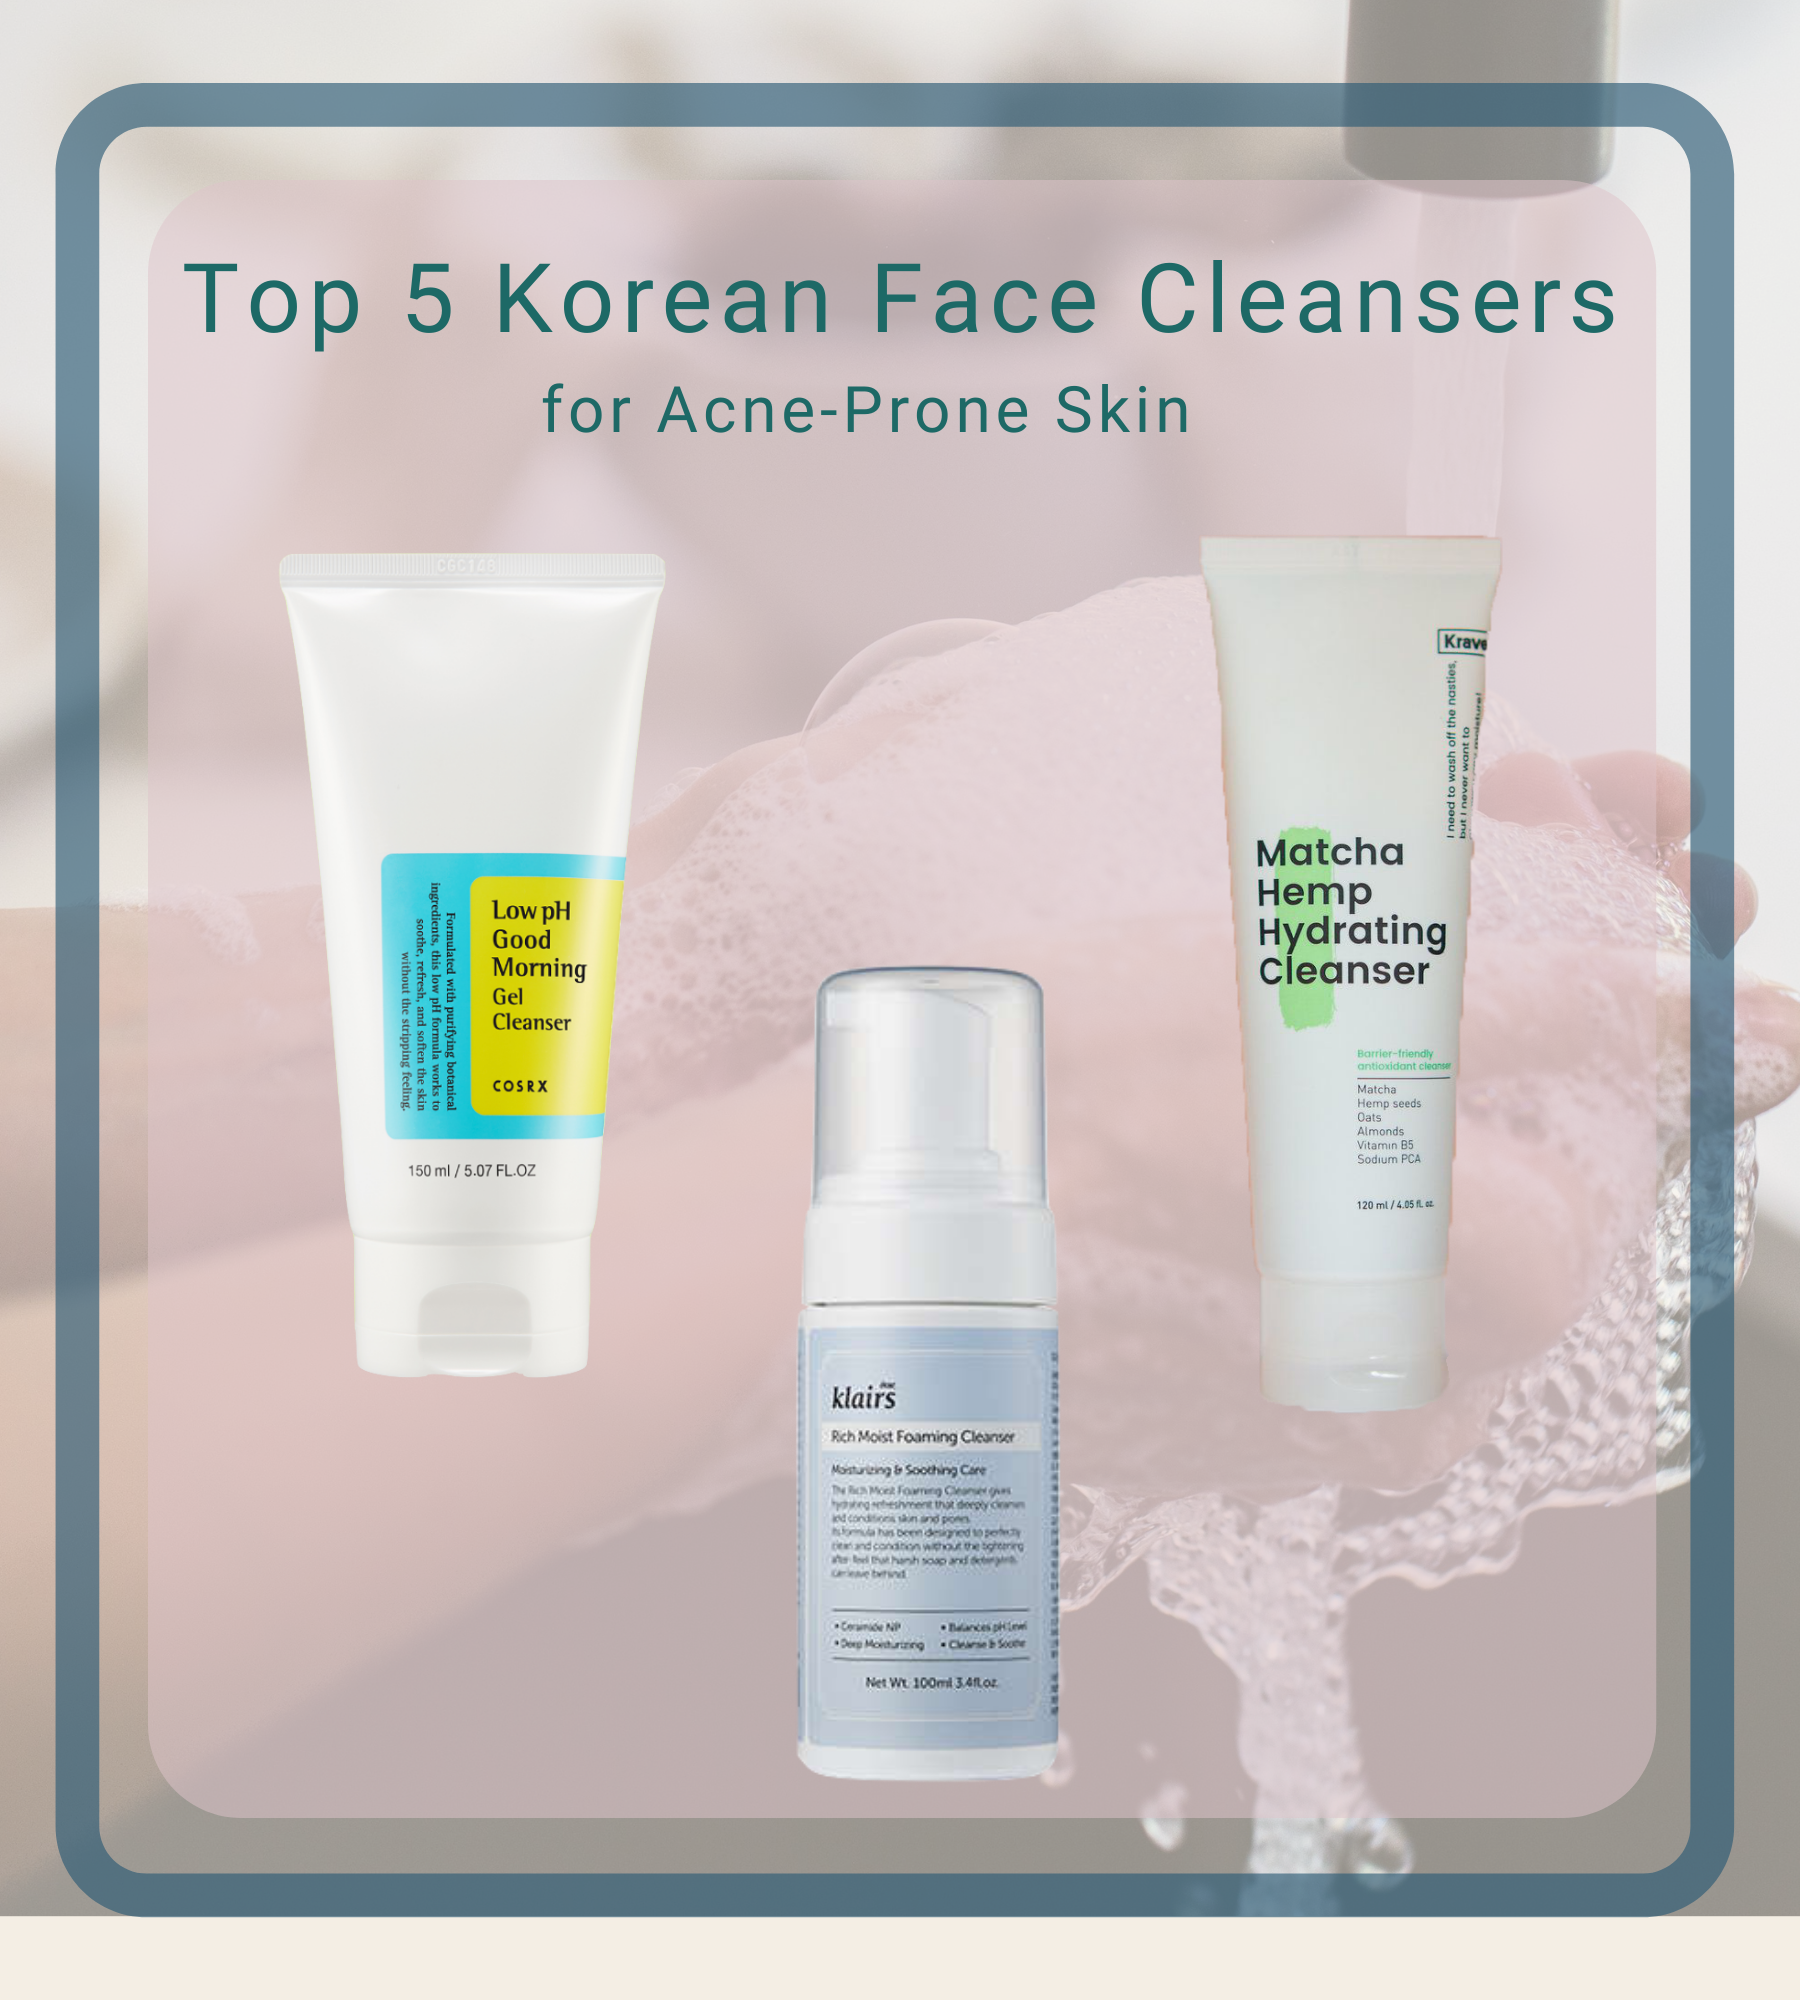 Top 5 Gentle Korean Face Cleansers for Acne-Prone Skin